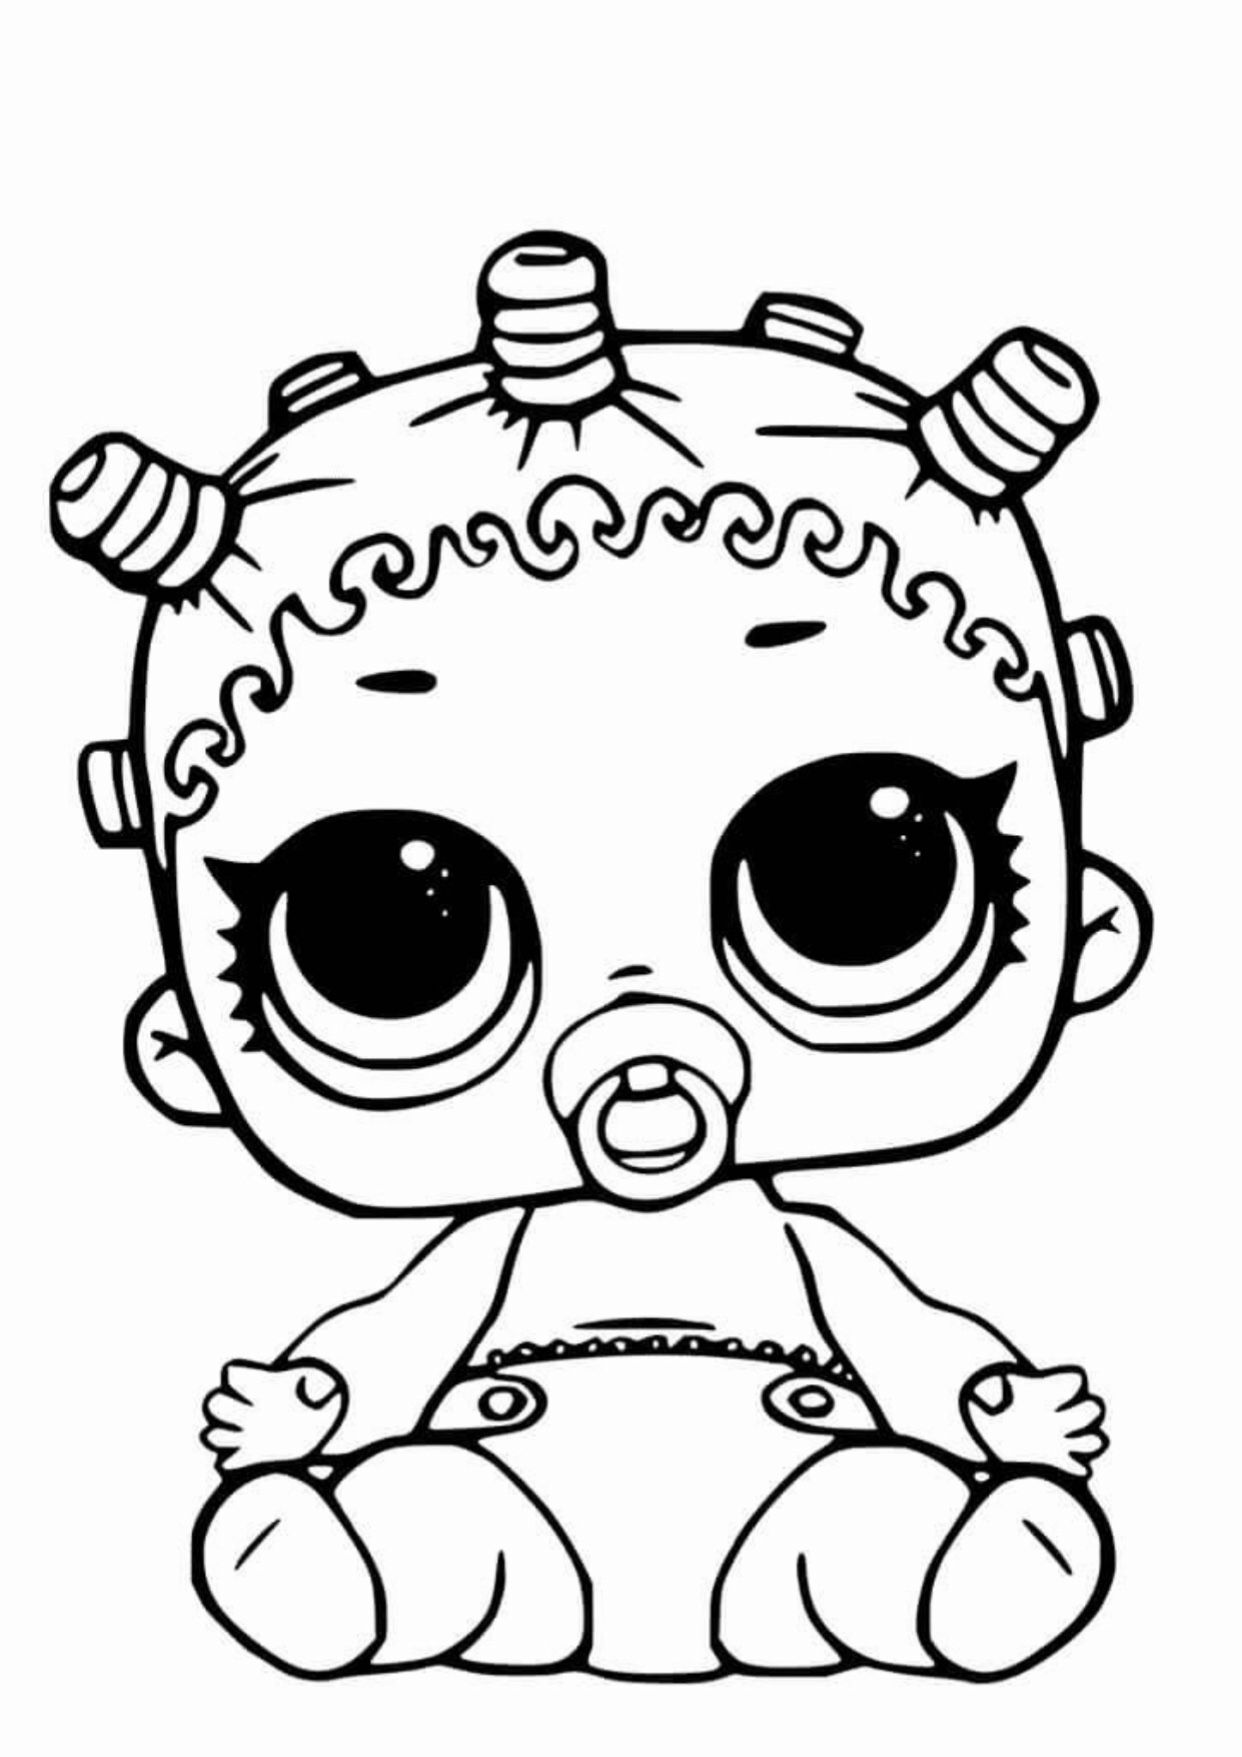 Lol Lil Sister Coloring Page Hello Kitty Coloring Cute Coloring Pages Toddler Coloring Book